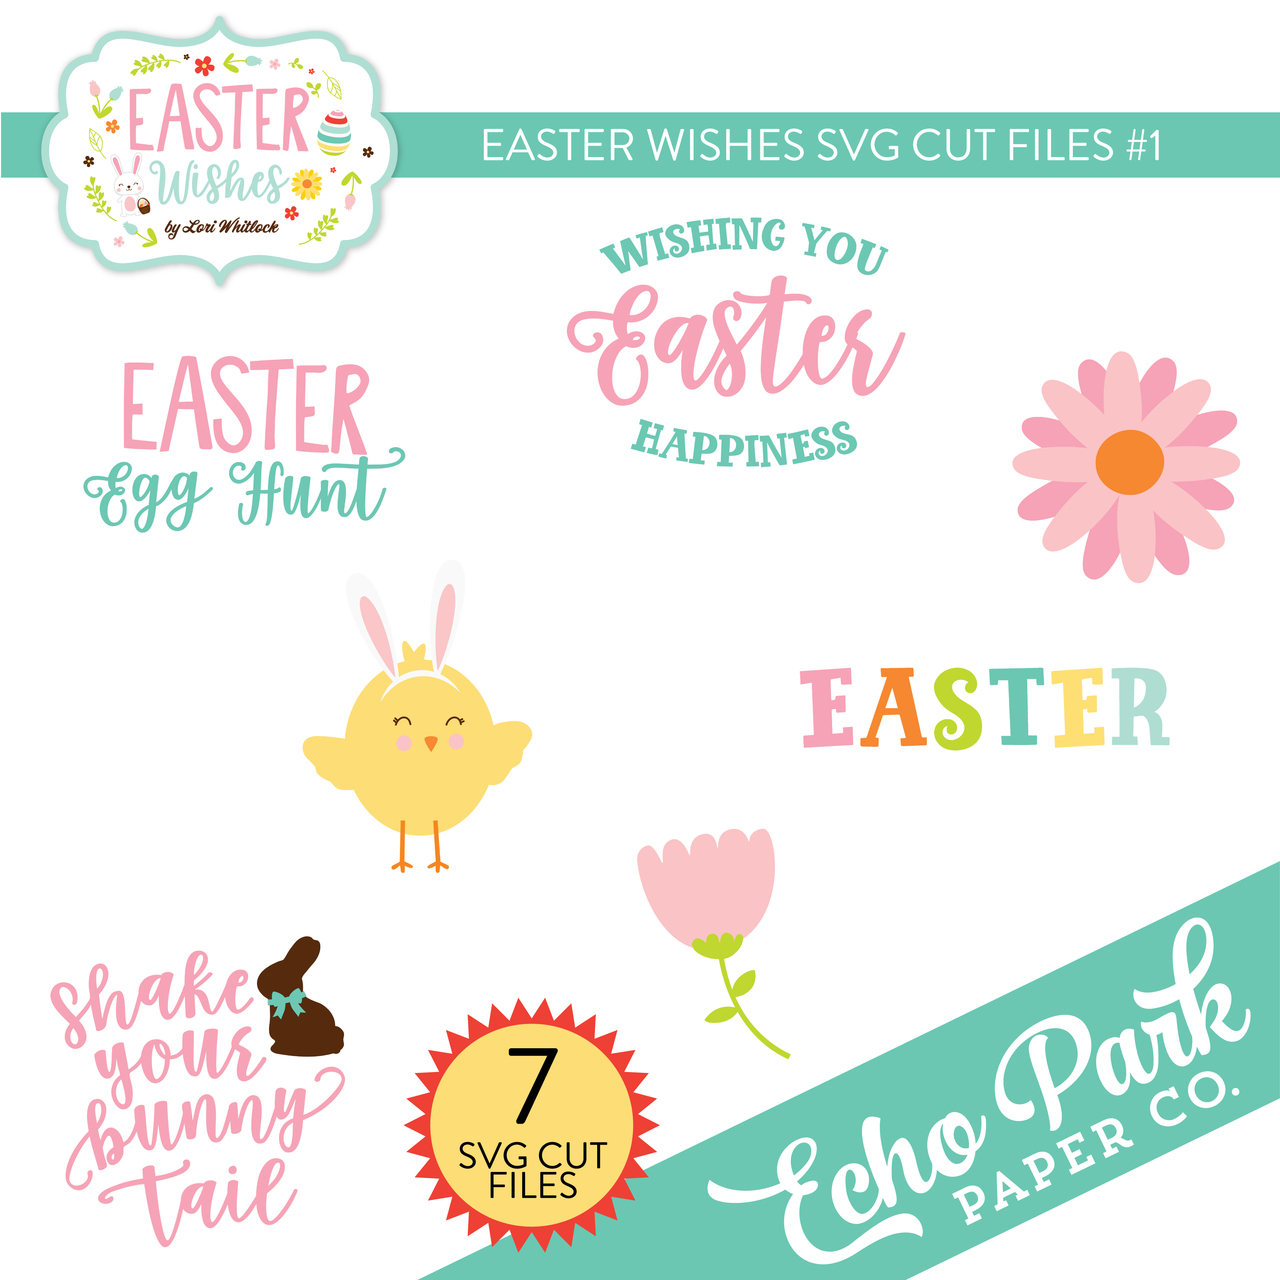 Easter Wishes Svg Cut Files 1 Snap Click Supply Co